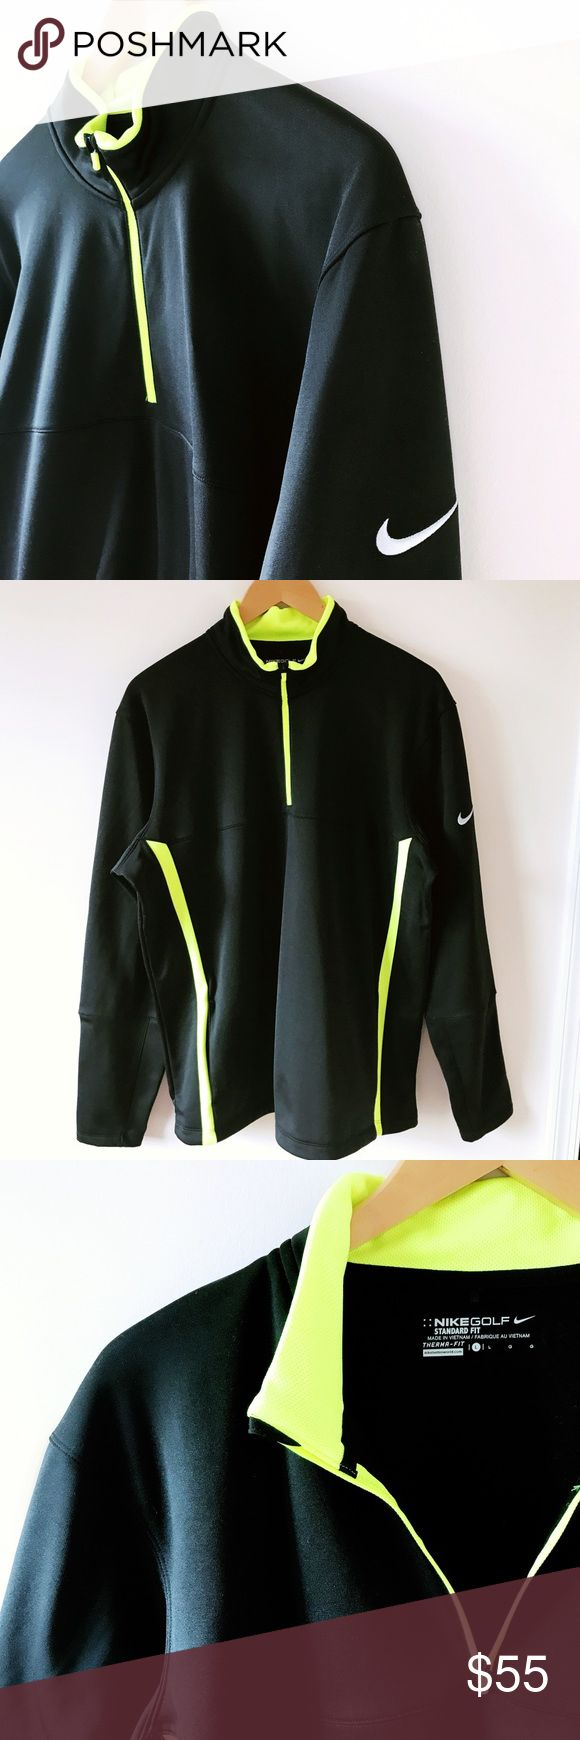 """Men's Nike golf jacket NWOT! (New without tag) Men's Nike therma fit golf jacket! Black with lime green pin stripe, zip front turtleneck collar, lined for warmth. Nike symbol on left arm and on zipper tag. Size 30"""" L, 26""""L arms. Offers welcome❤️ no trades thank you Nike Jackets & Coats Performance Jackets"""